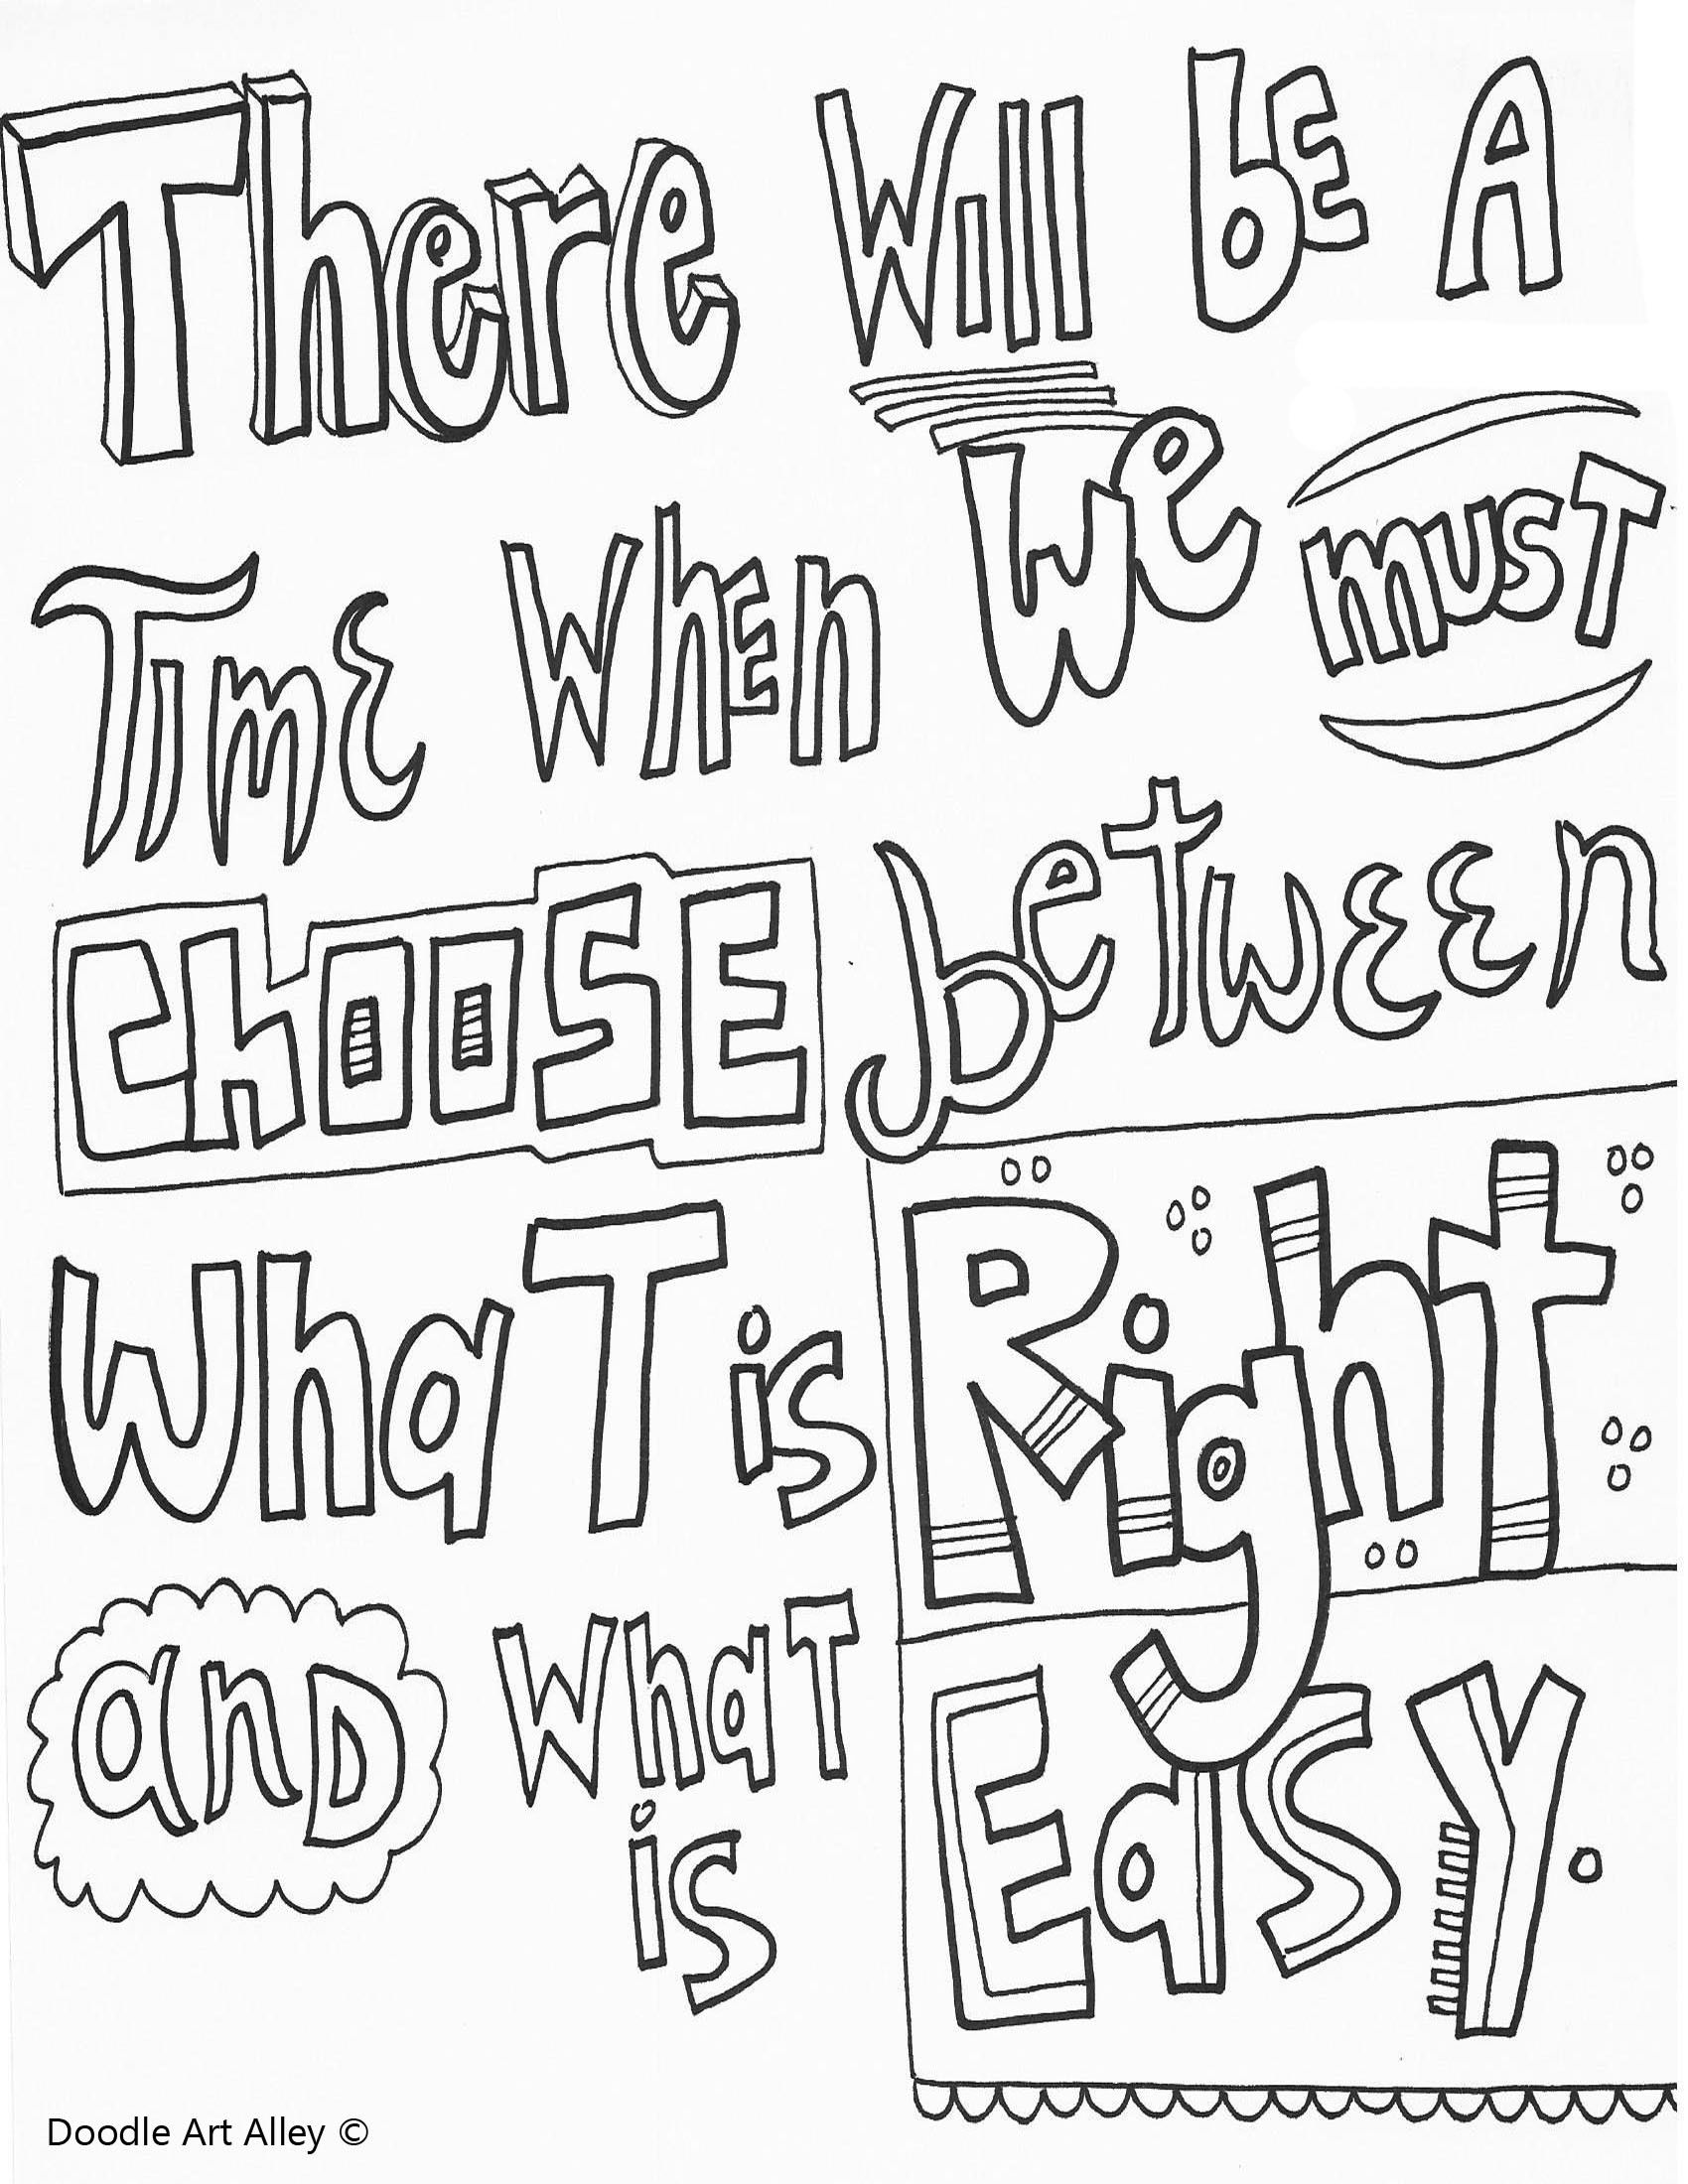 Therewillbeatime Jpg Quote Coloring Pages Harry Potter Coloring Pages Coloring Pages